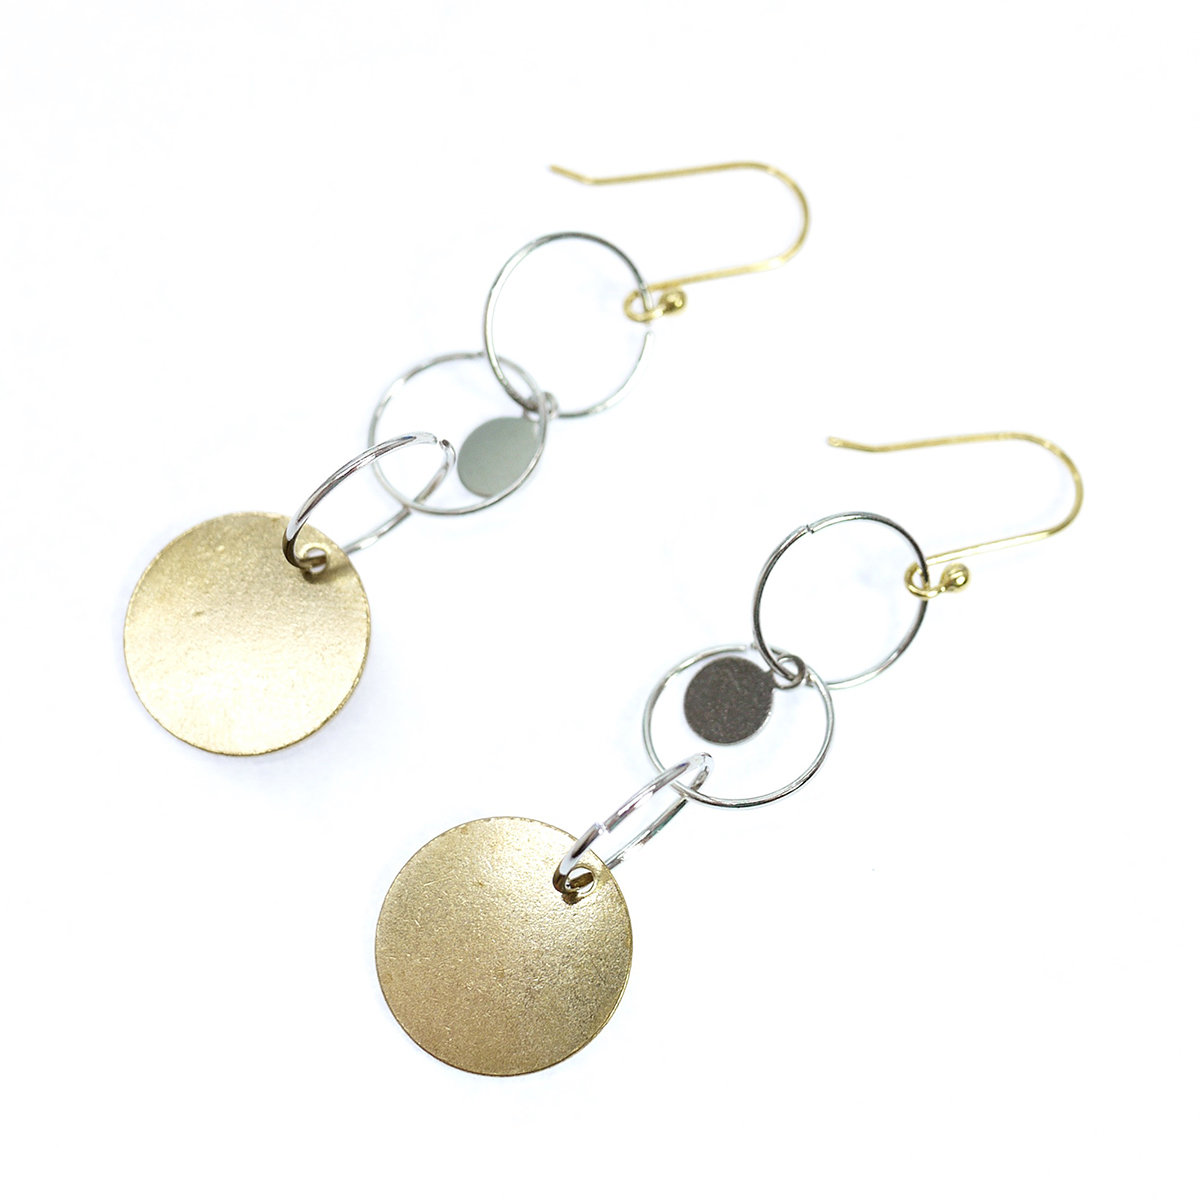 5 circles — 14k hook, Gold plating, designed in Hong Kong, handmade jewellery, special gift